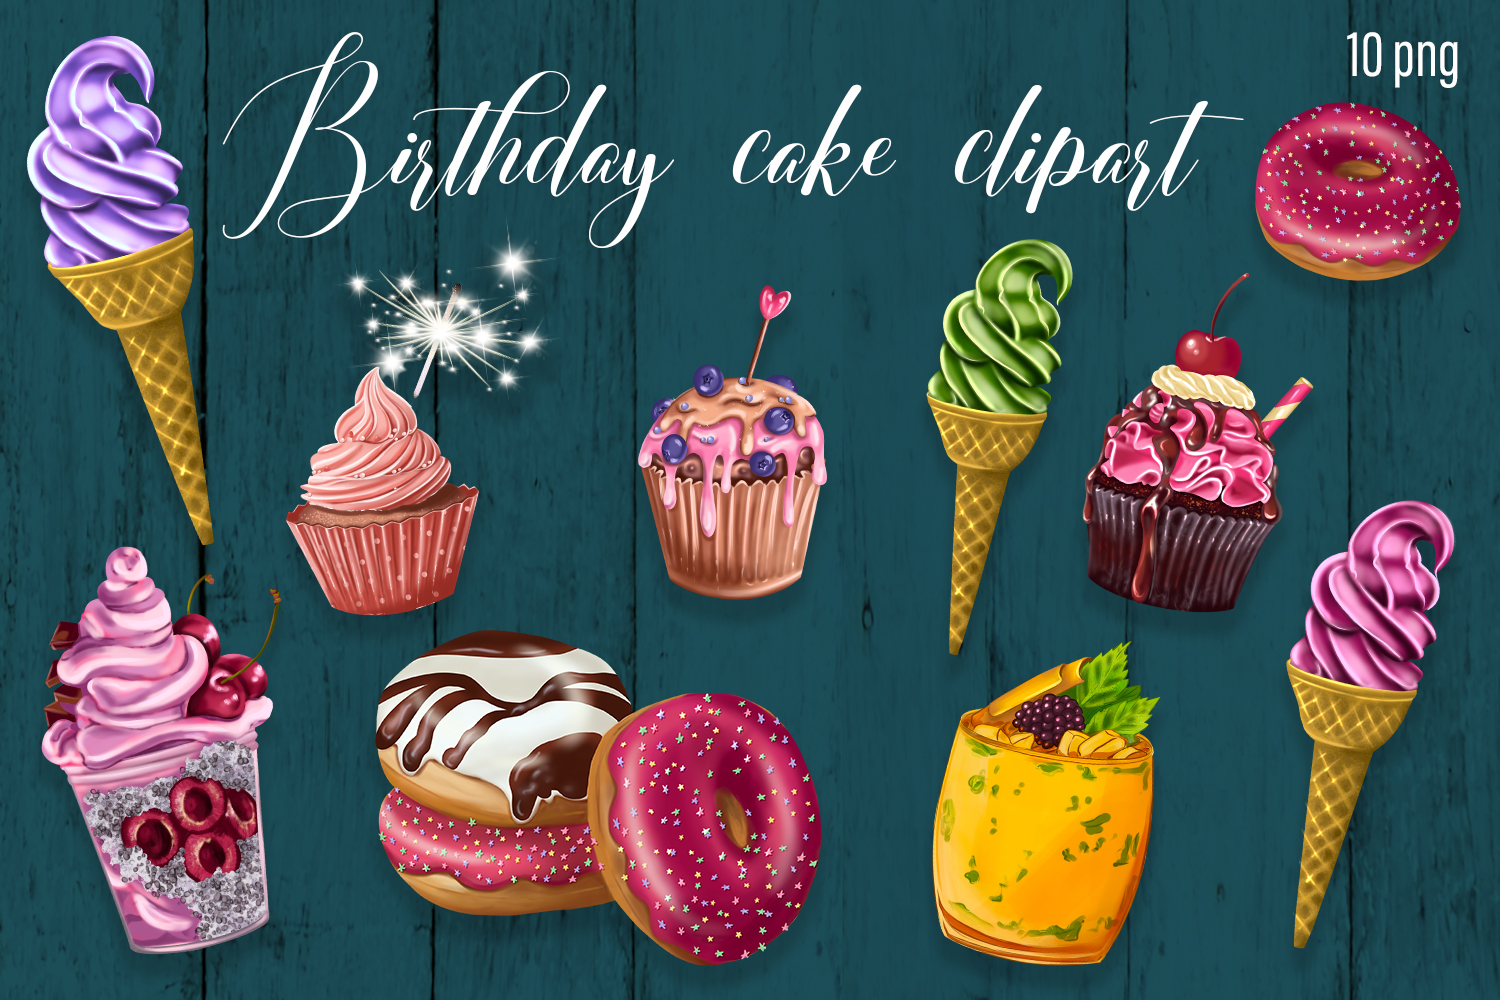 Ice cream cakes clipart. Baby shower clipart. - 1 27 -